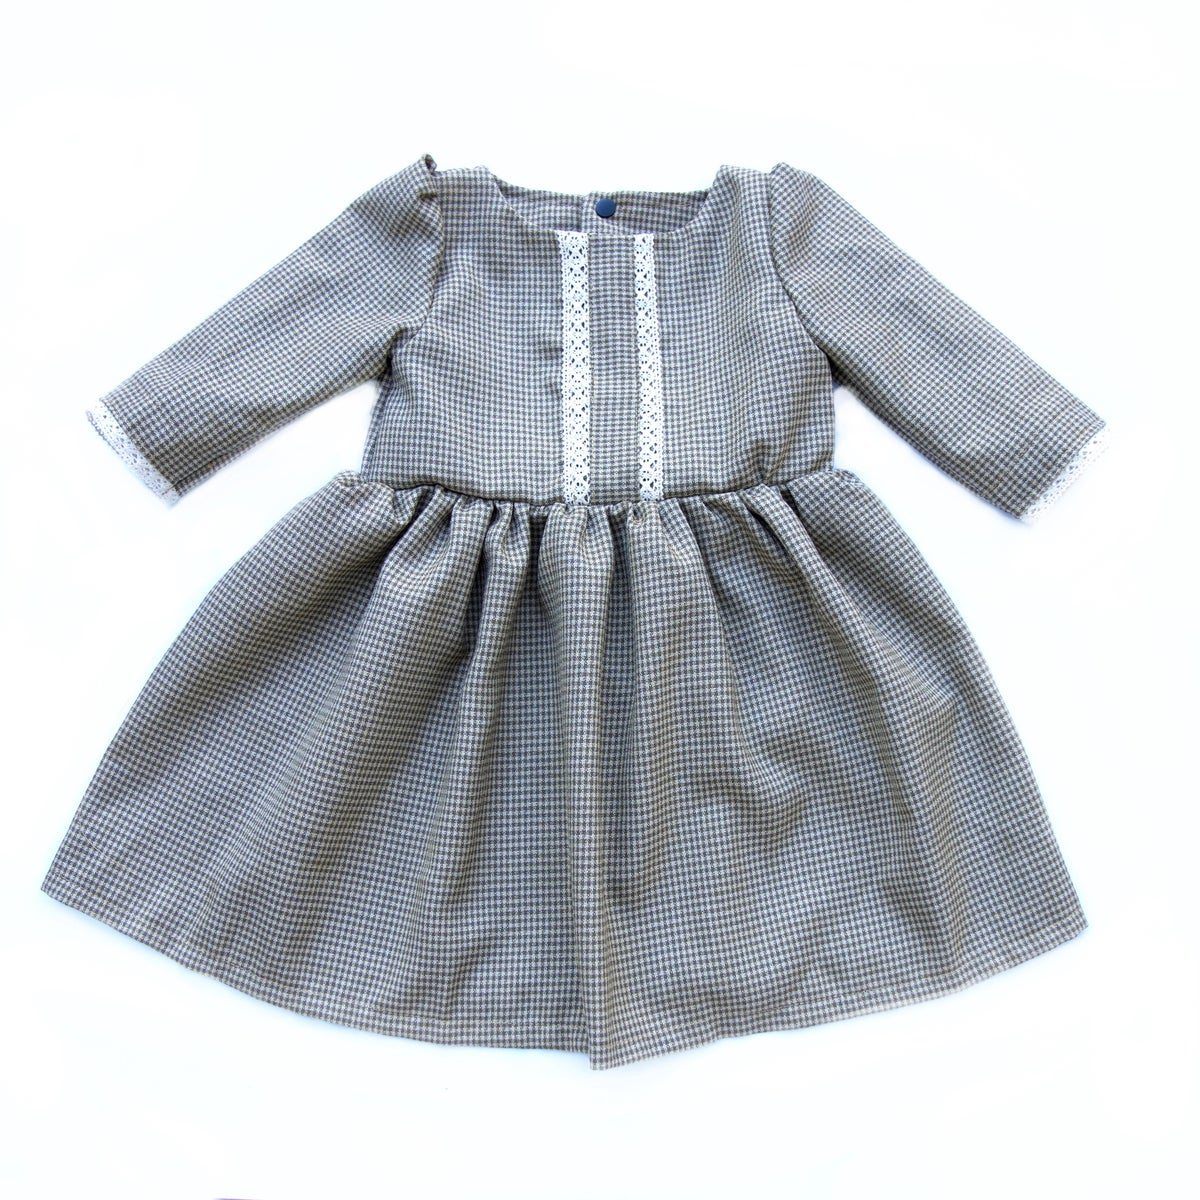 Image of The Anne of Green Gables Dress in Autumn Gingham